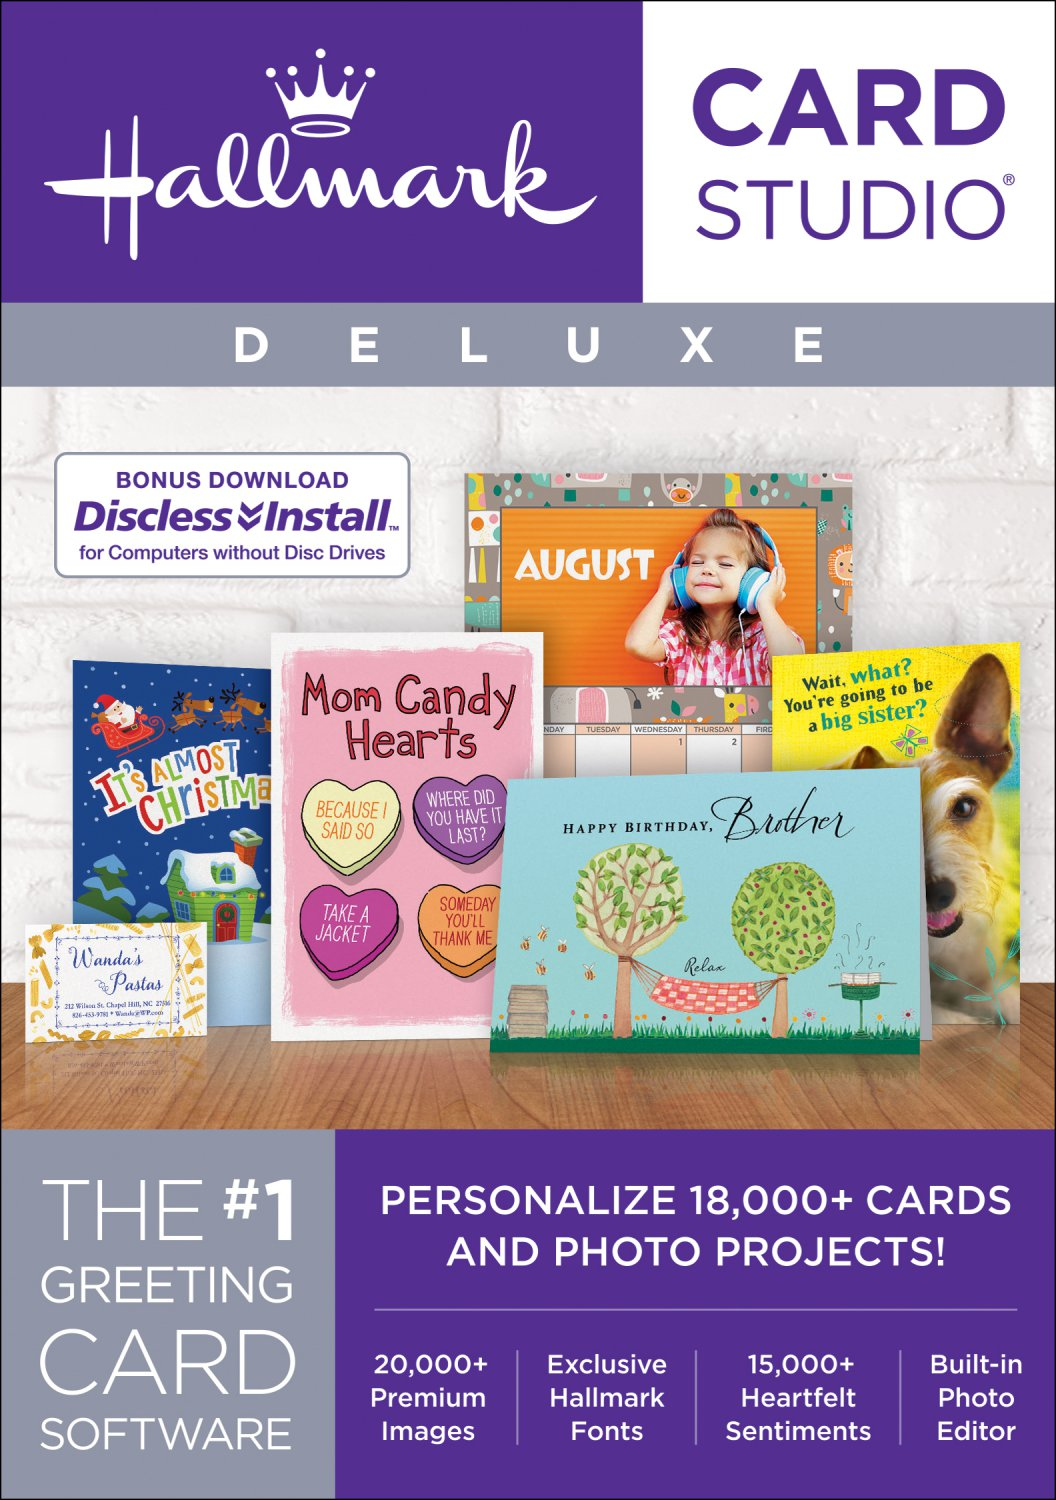 Hallmark Card Studio 2018 Deluxe (Latest Version) [Windows]